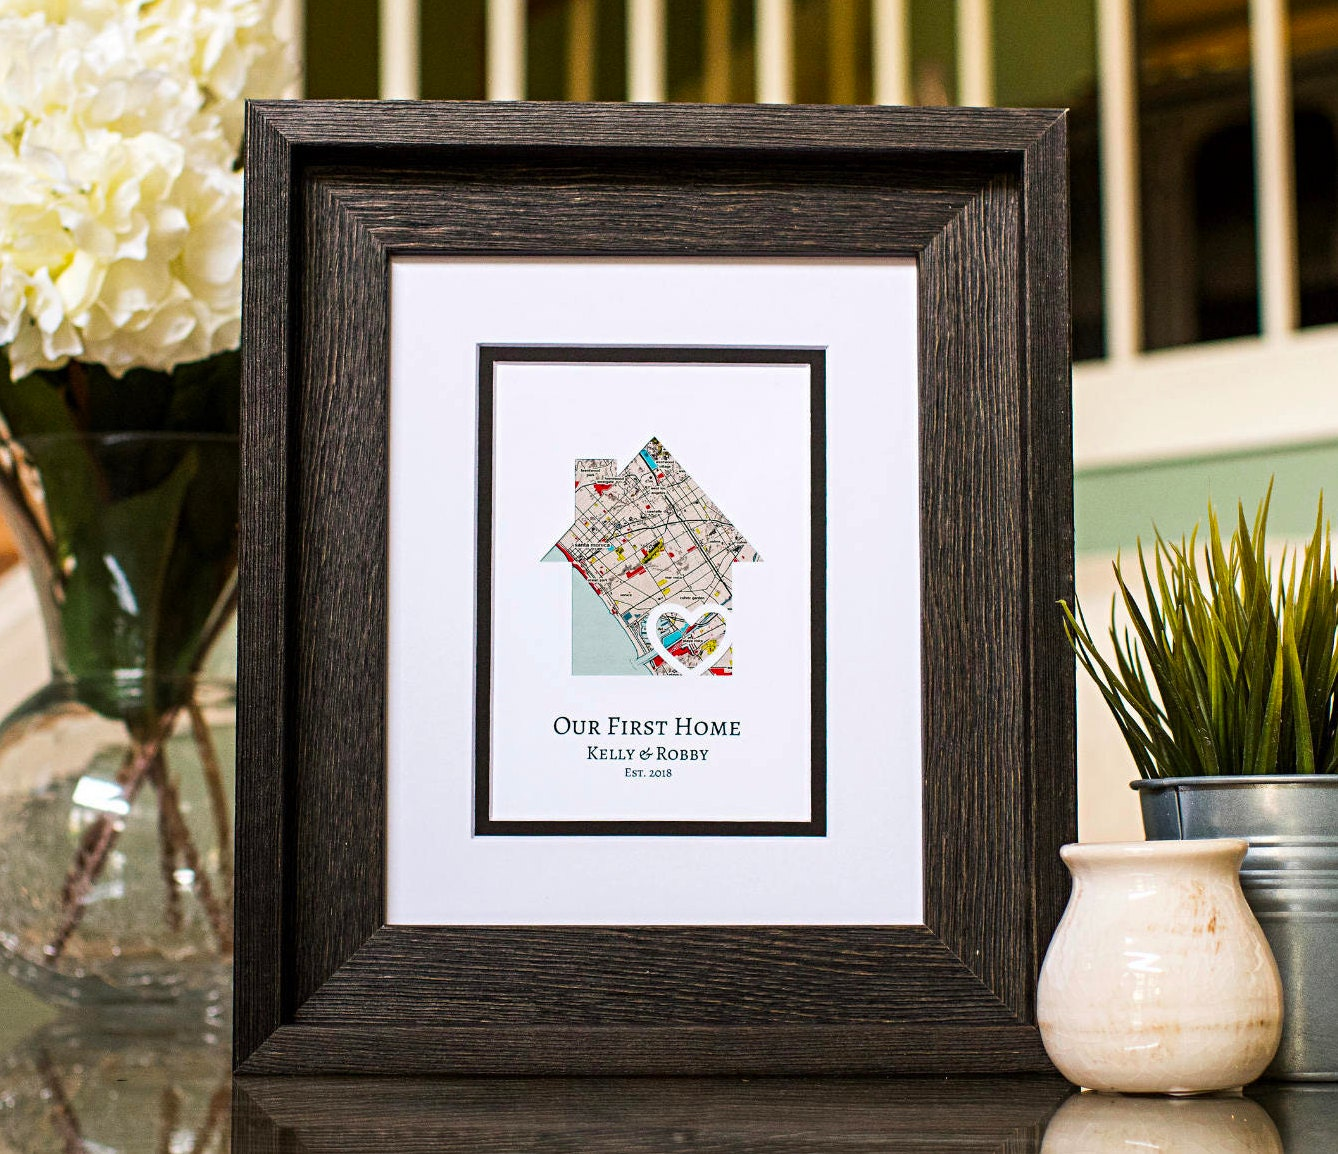 Personalised Home Is Where New Home Gift Print By: Our First Home New Home Housewarming Gift Personalized Map